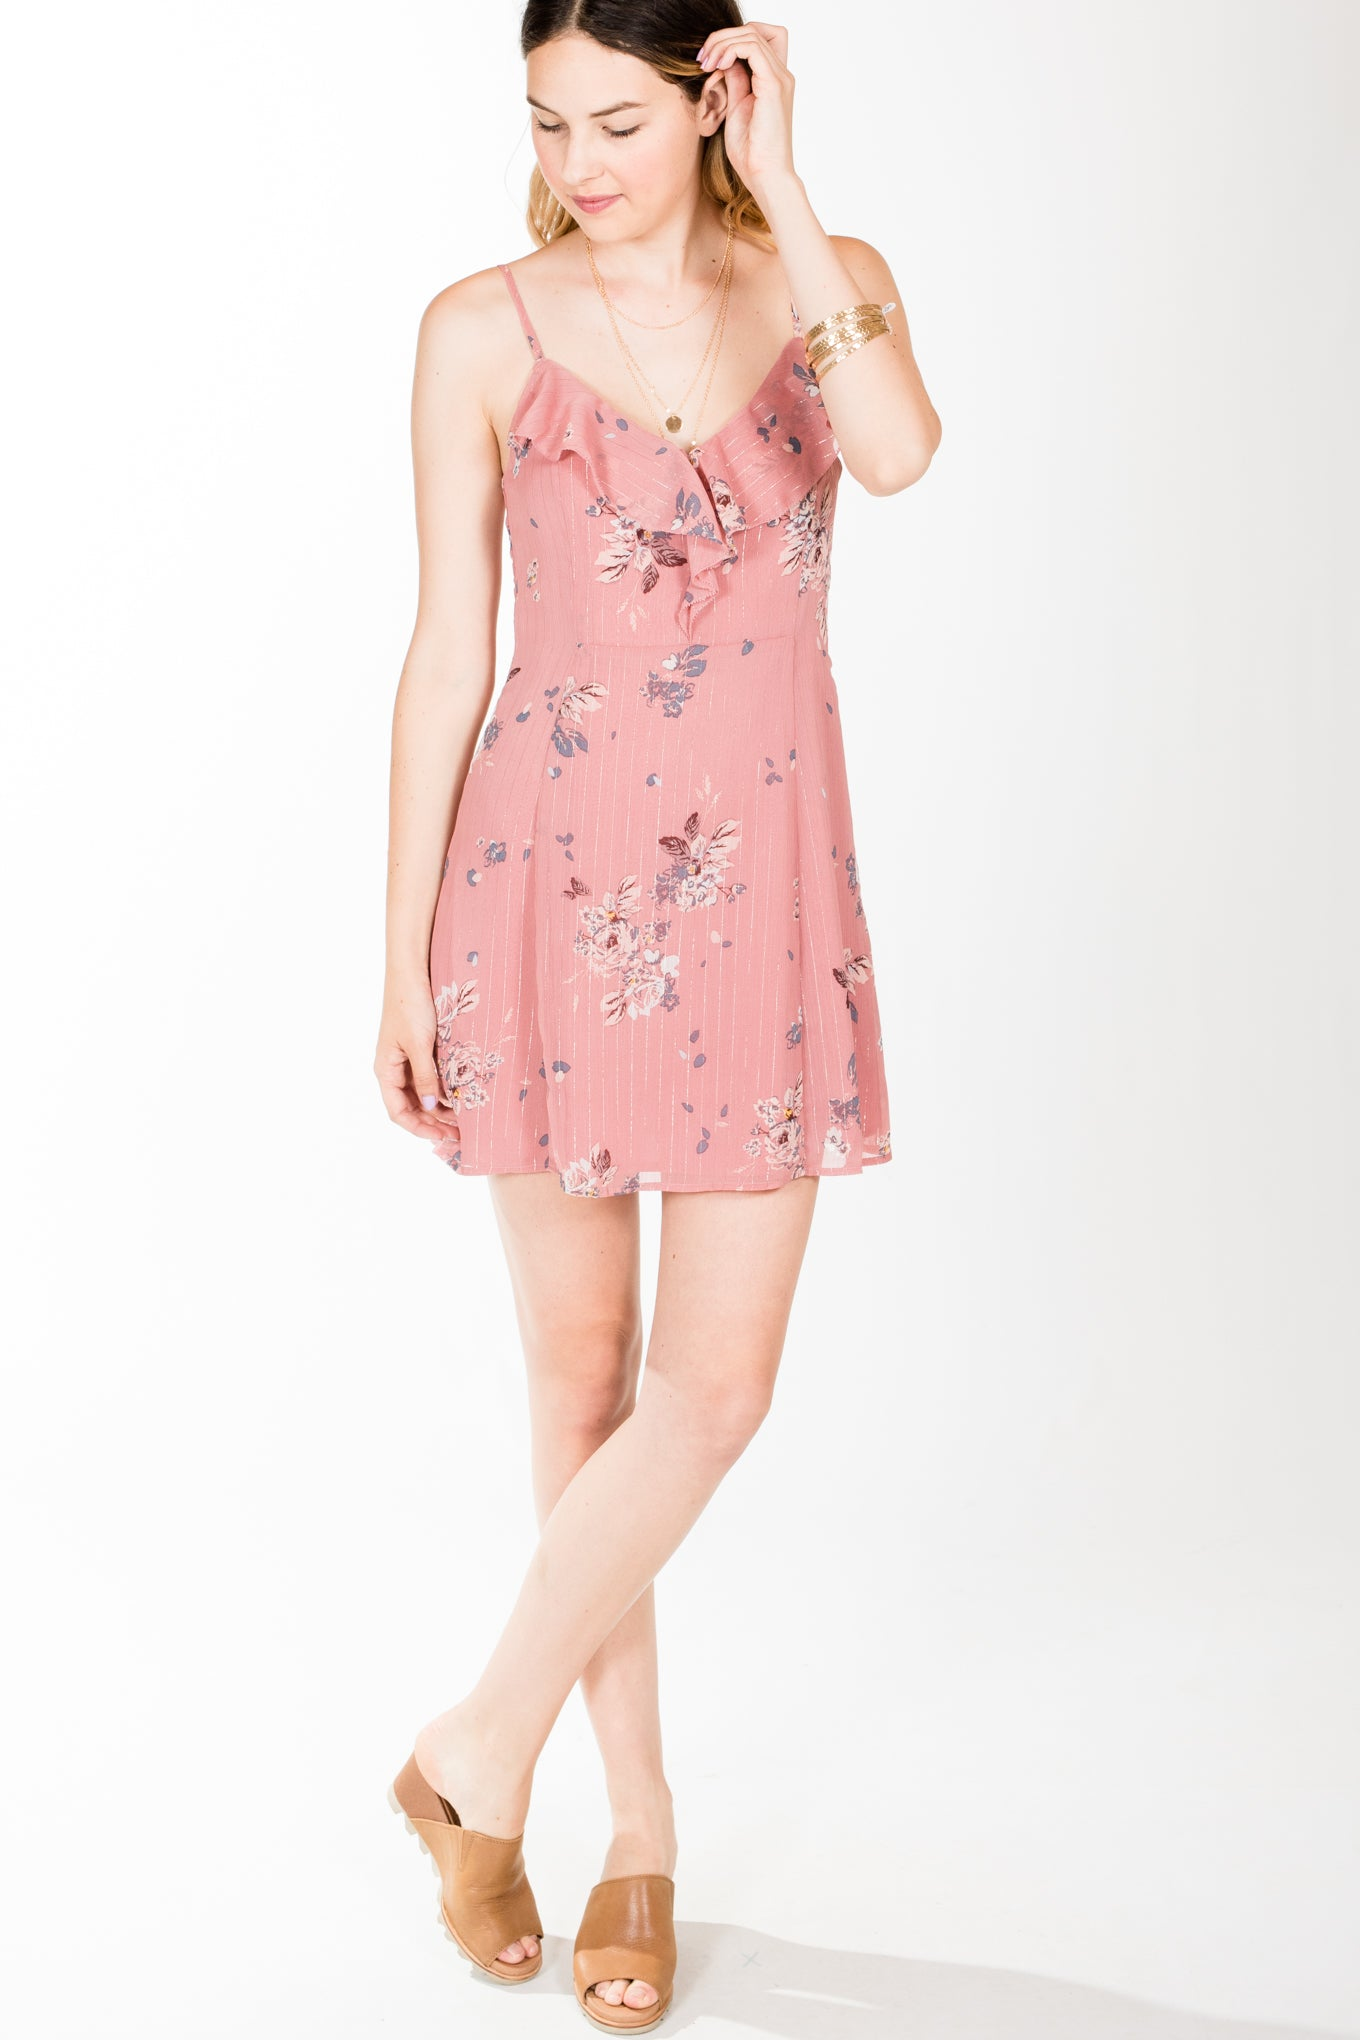 Gentle Fawn .Megara Dress.Rose Tan